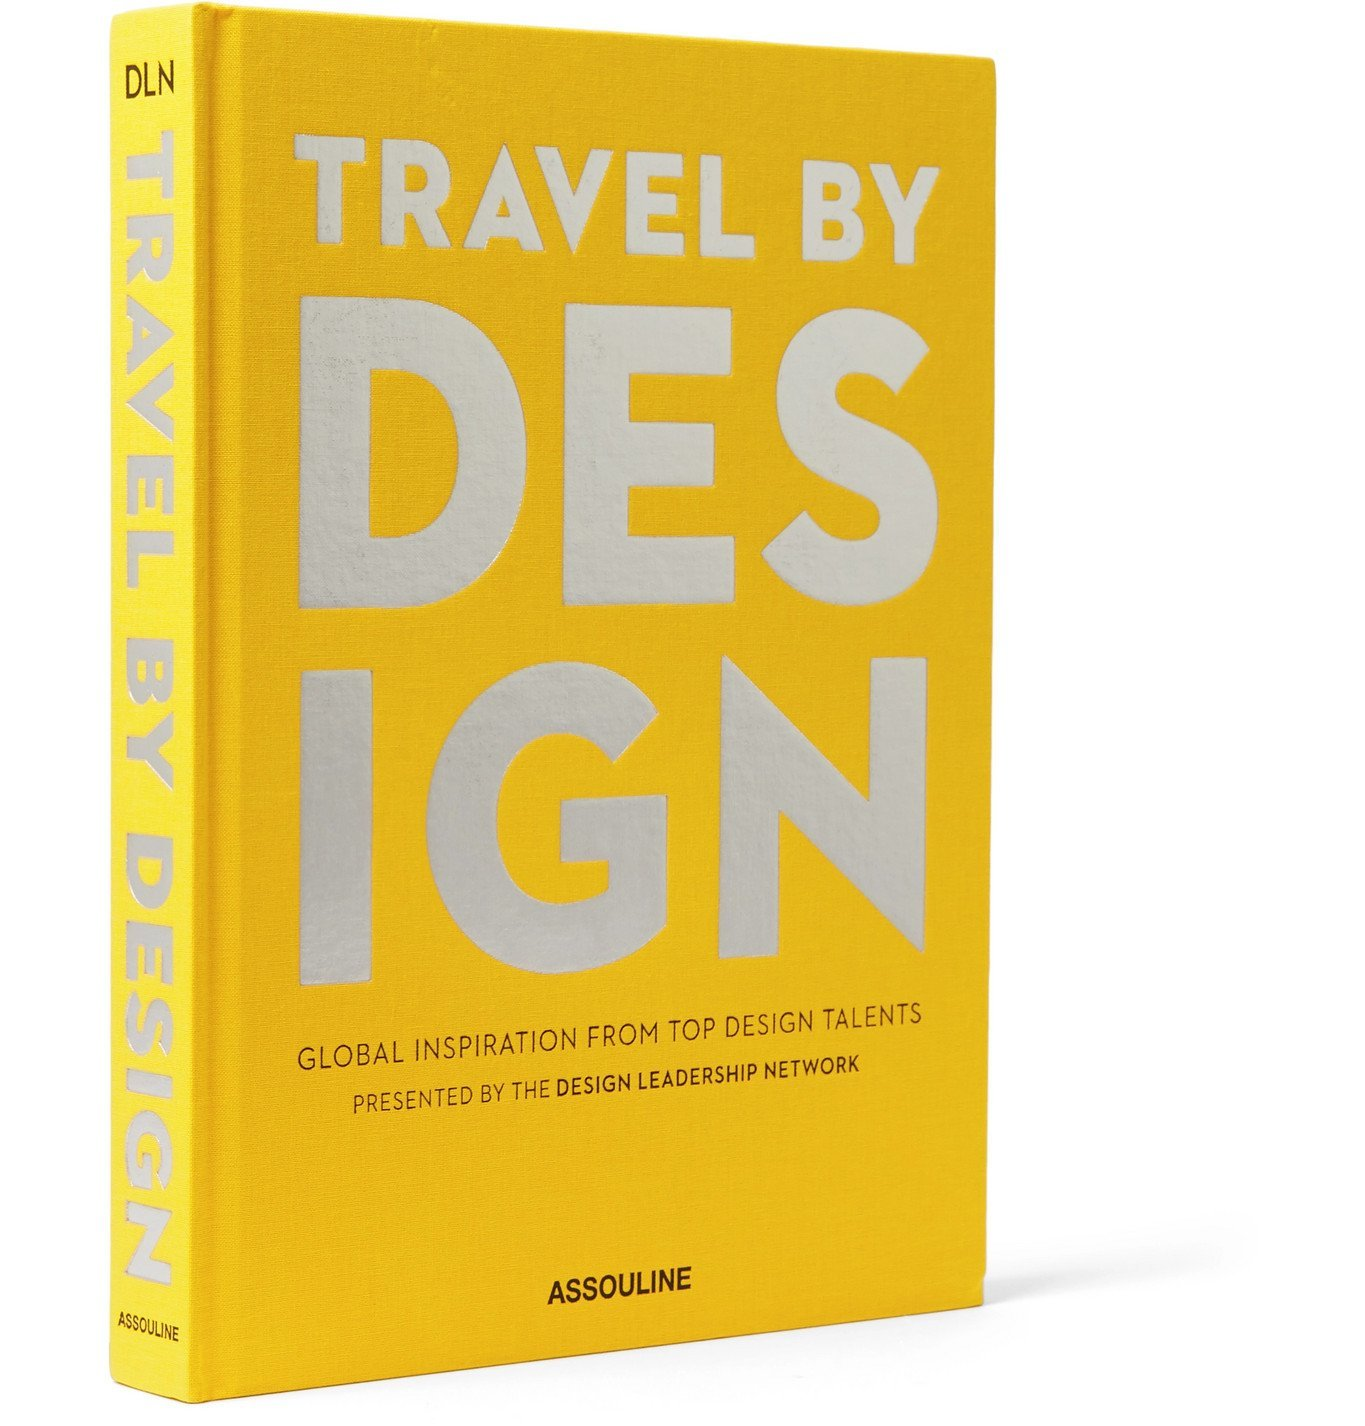 Photo: Assouline - Travel by Design Hardcover Book - Yellow